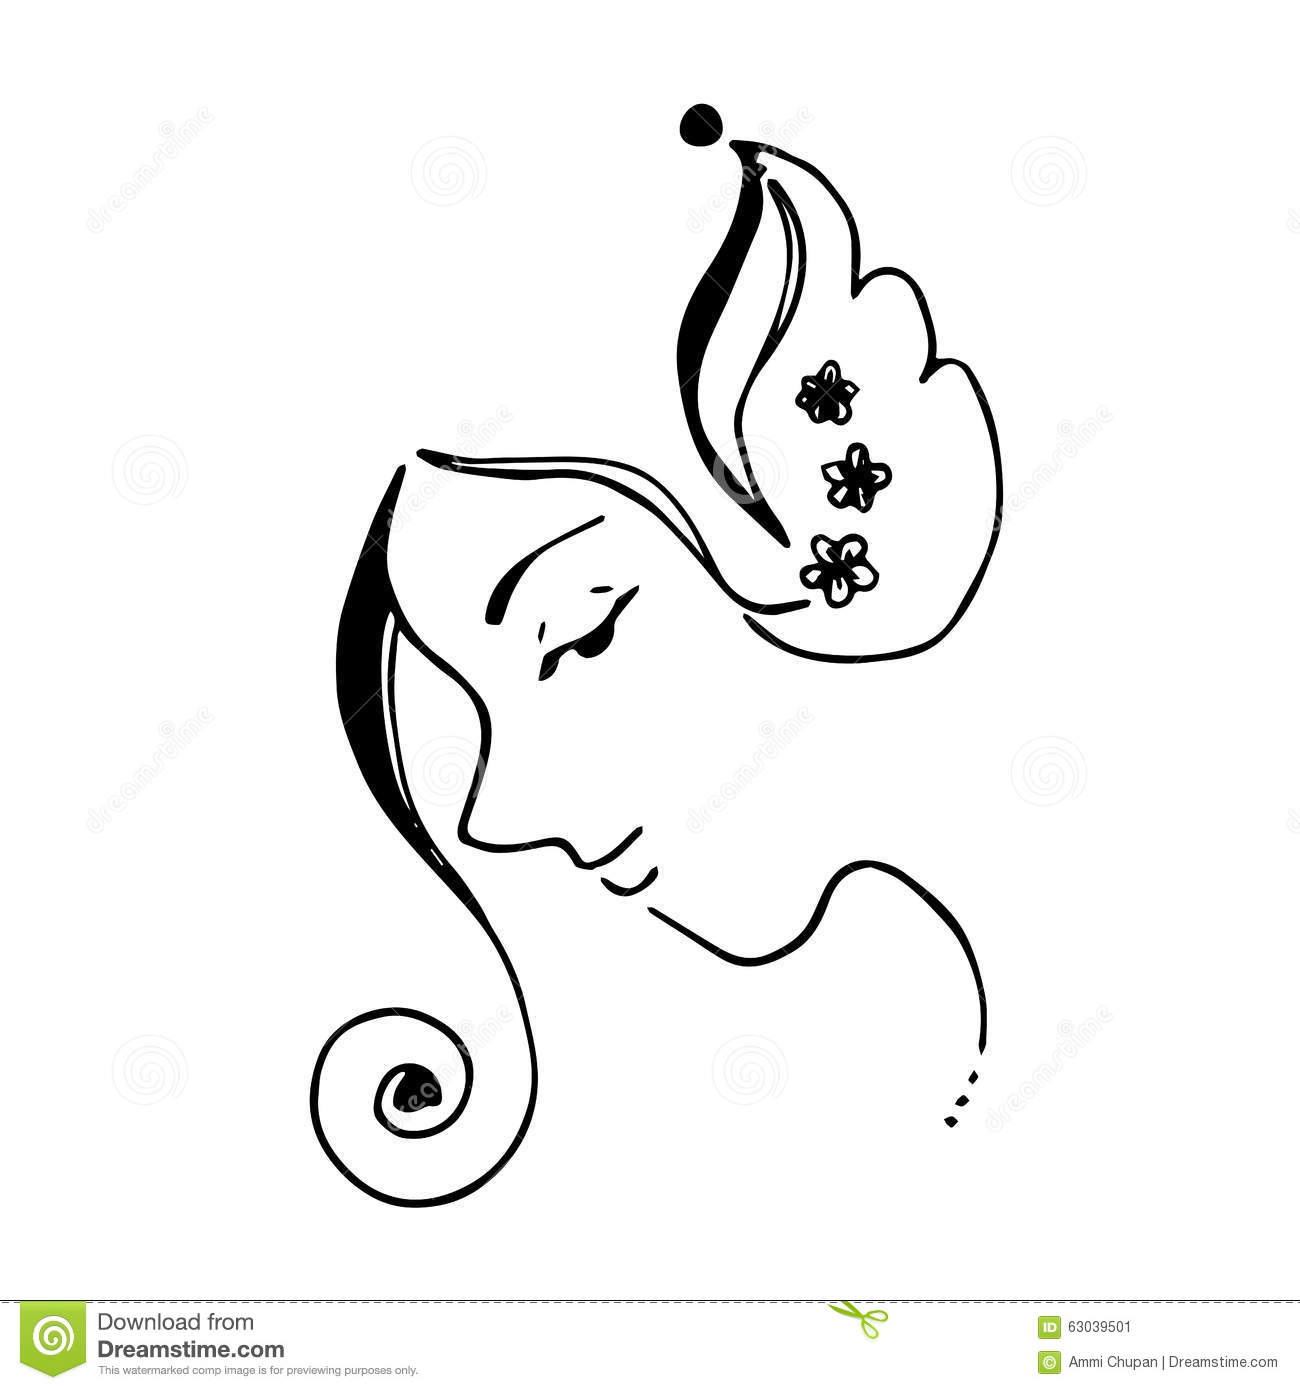 Abstract Face Line Drawing : Black curve board background d rendering stock photo